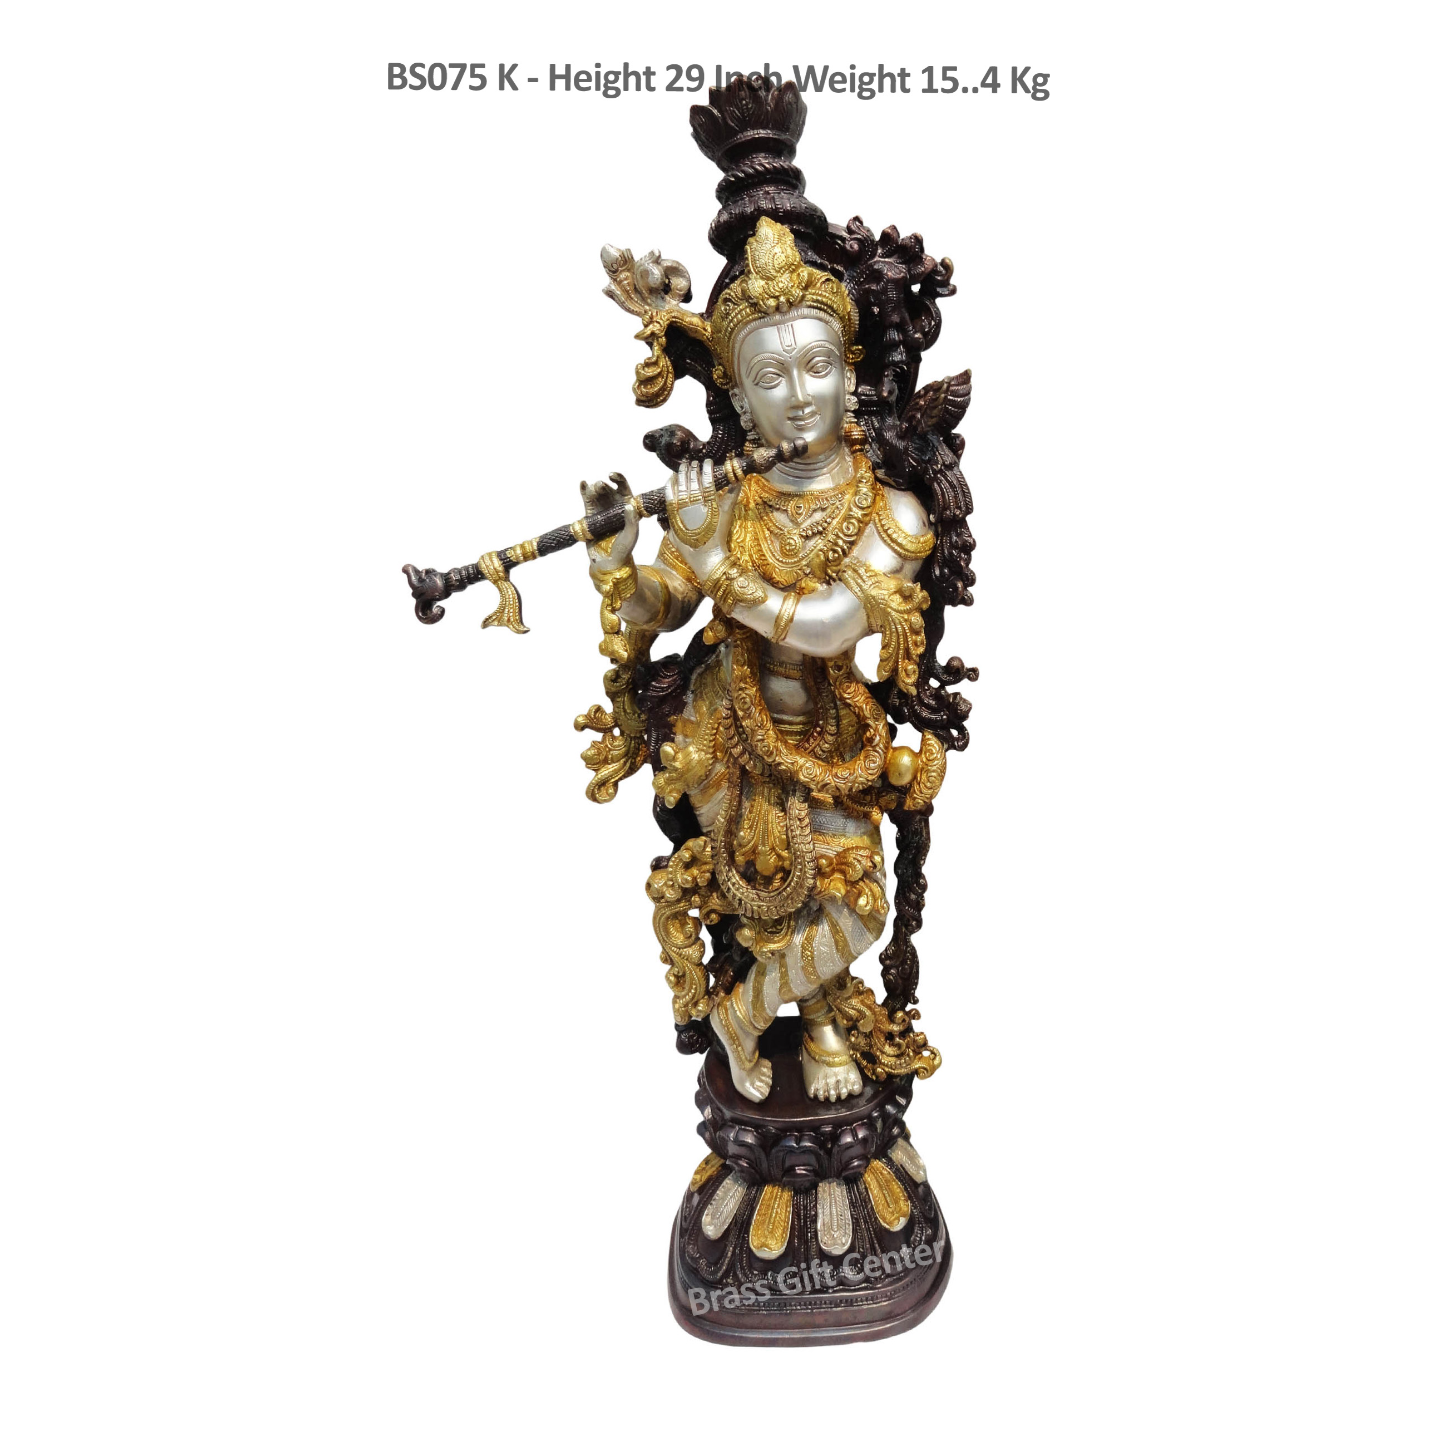 Brass Showpiece Krishna Ji Statue With Color With Lacquer Finish, Height 29 Inch (BS075 K)